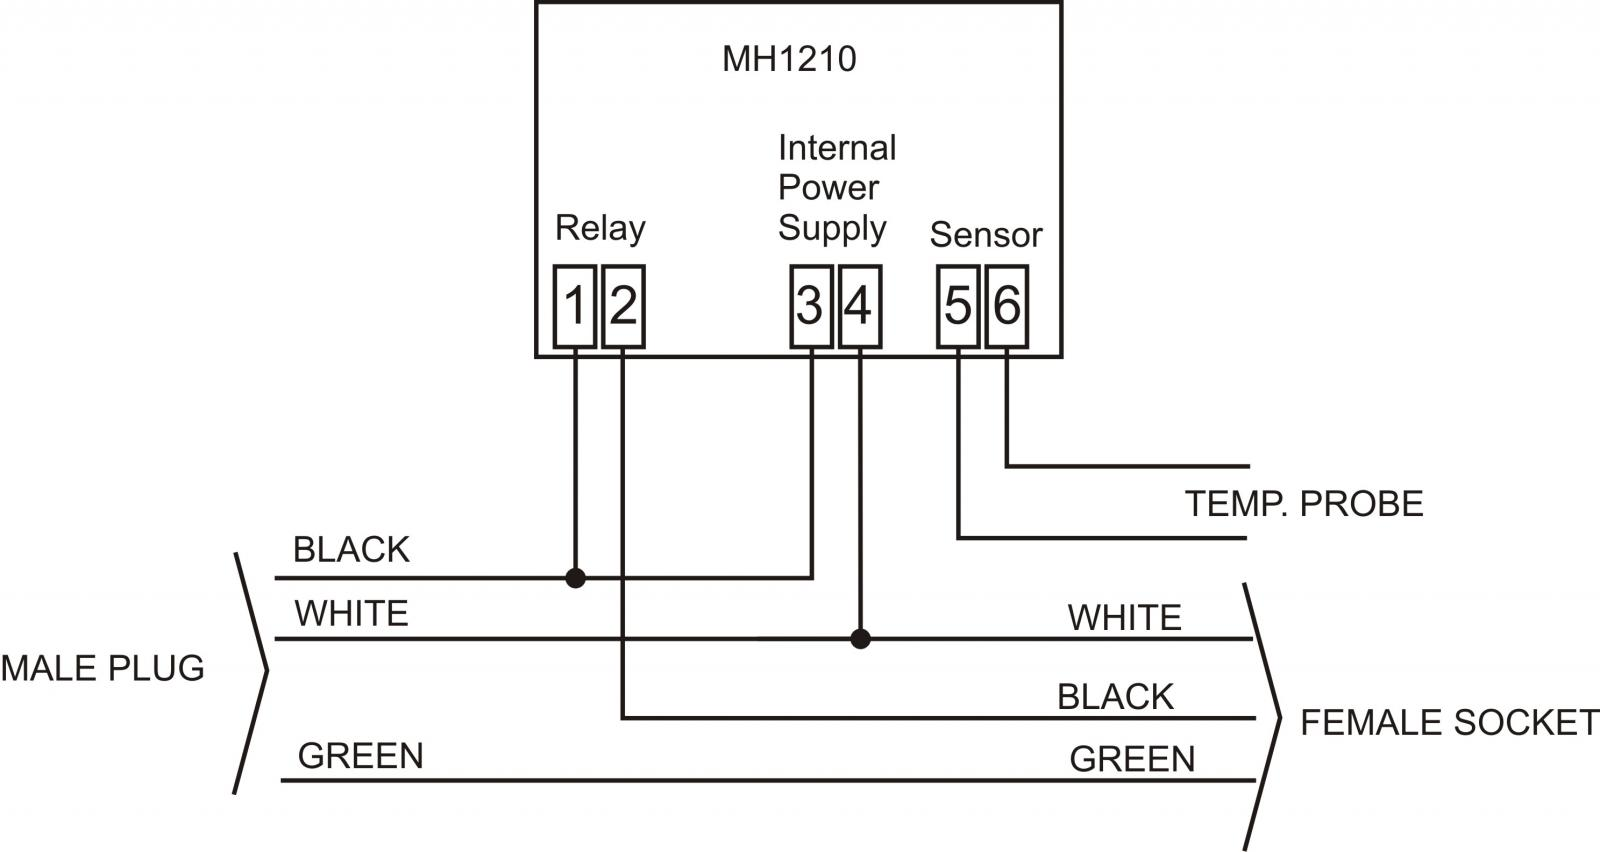 wiring help needed for mh1210f